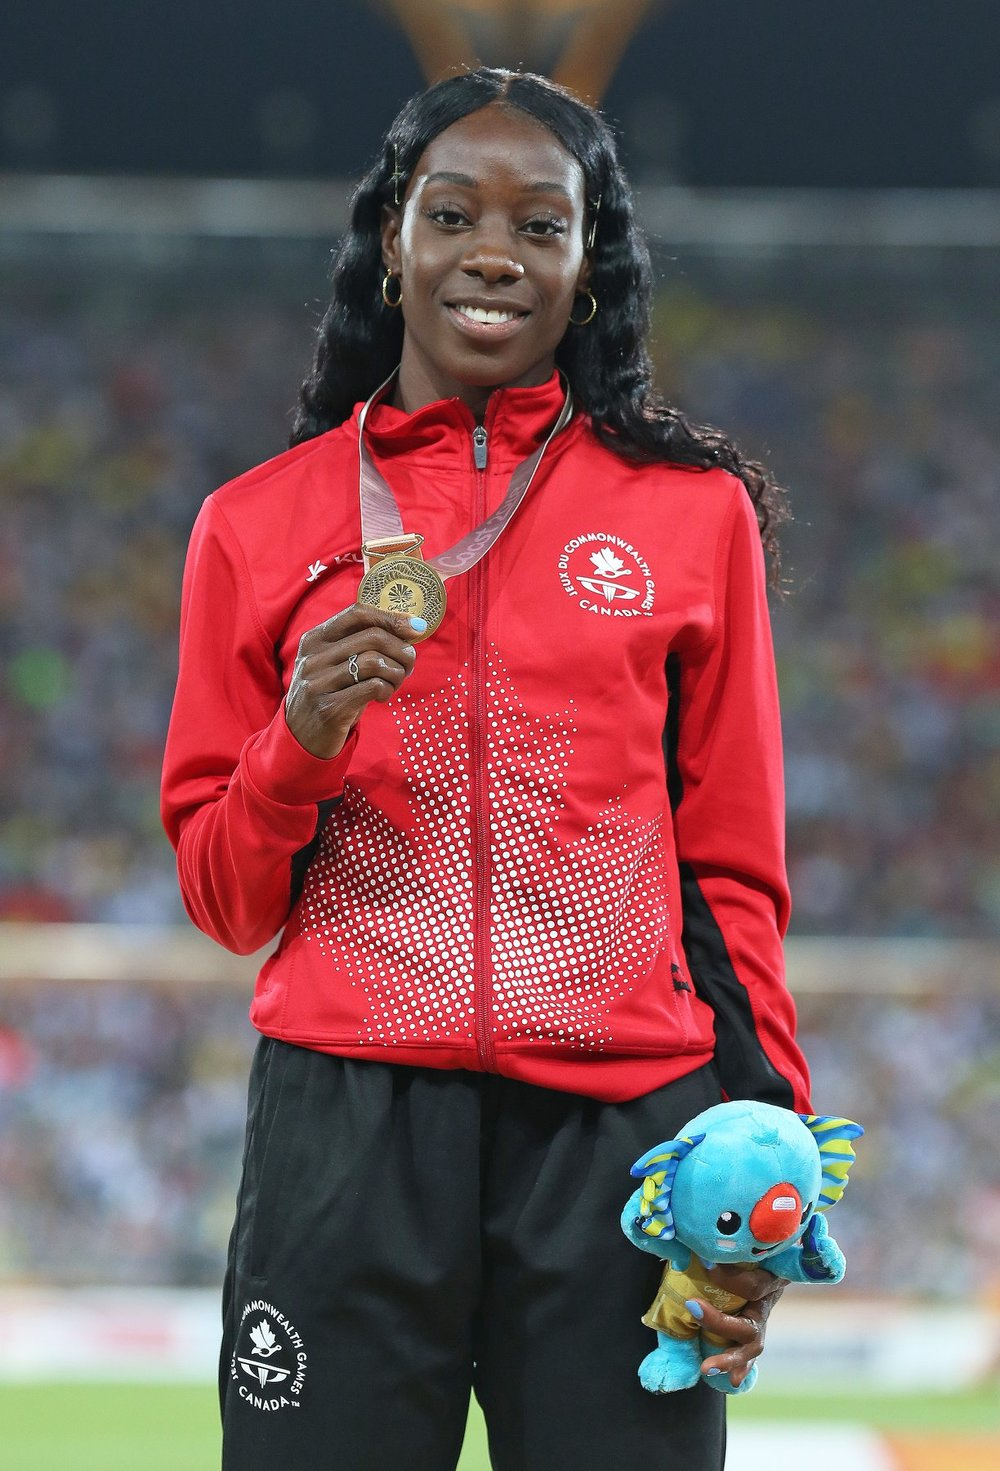 Christabel Nettey won the gold at Commonwealth Games